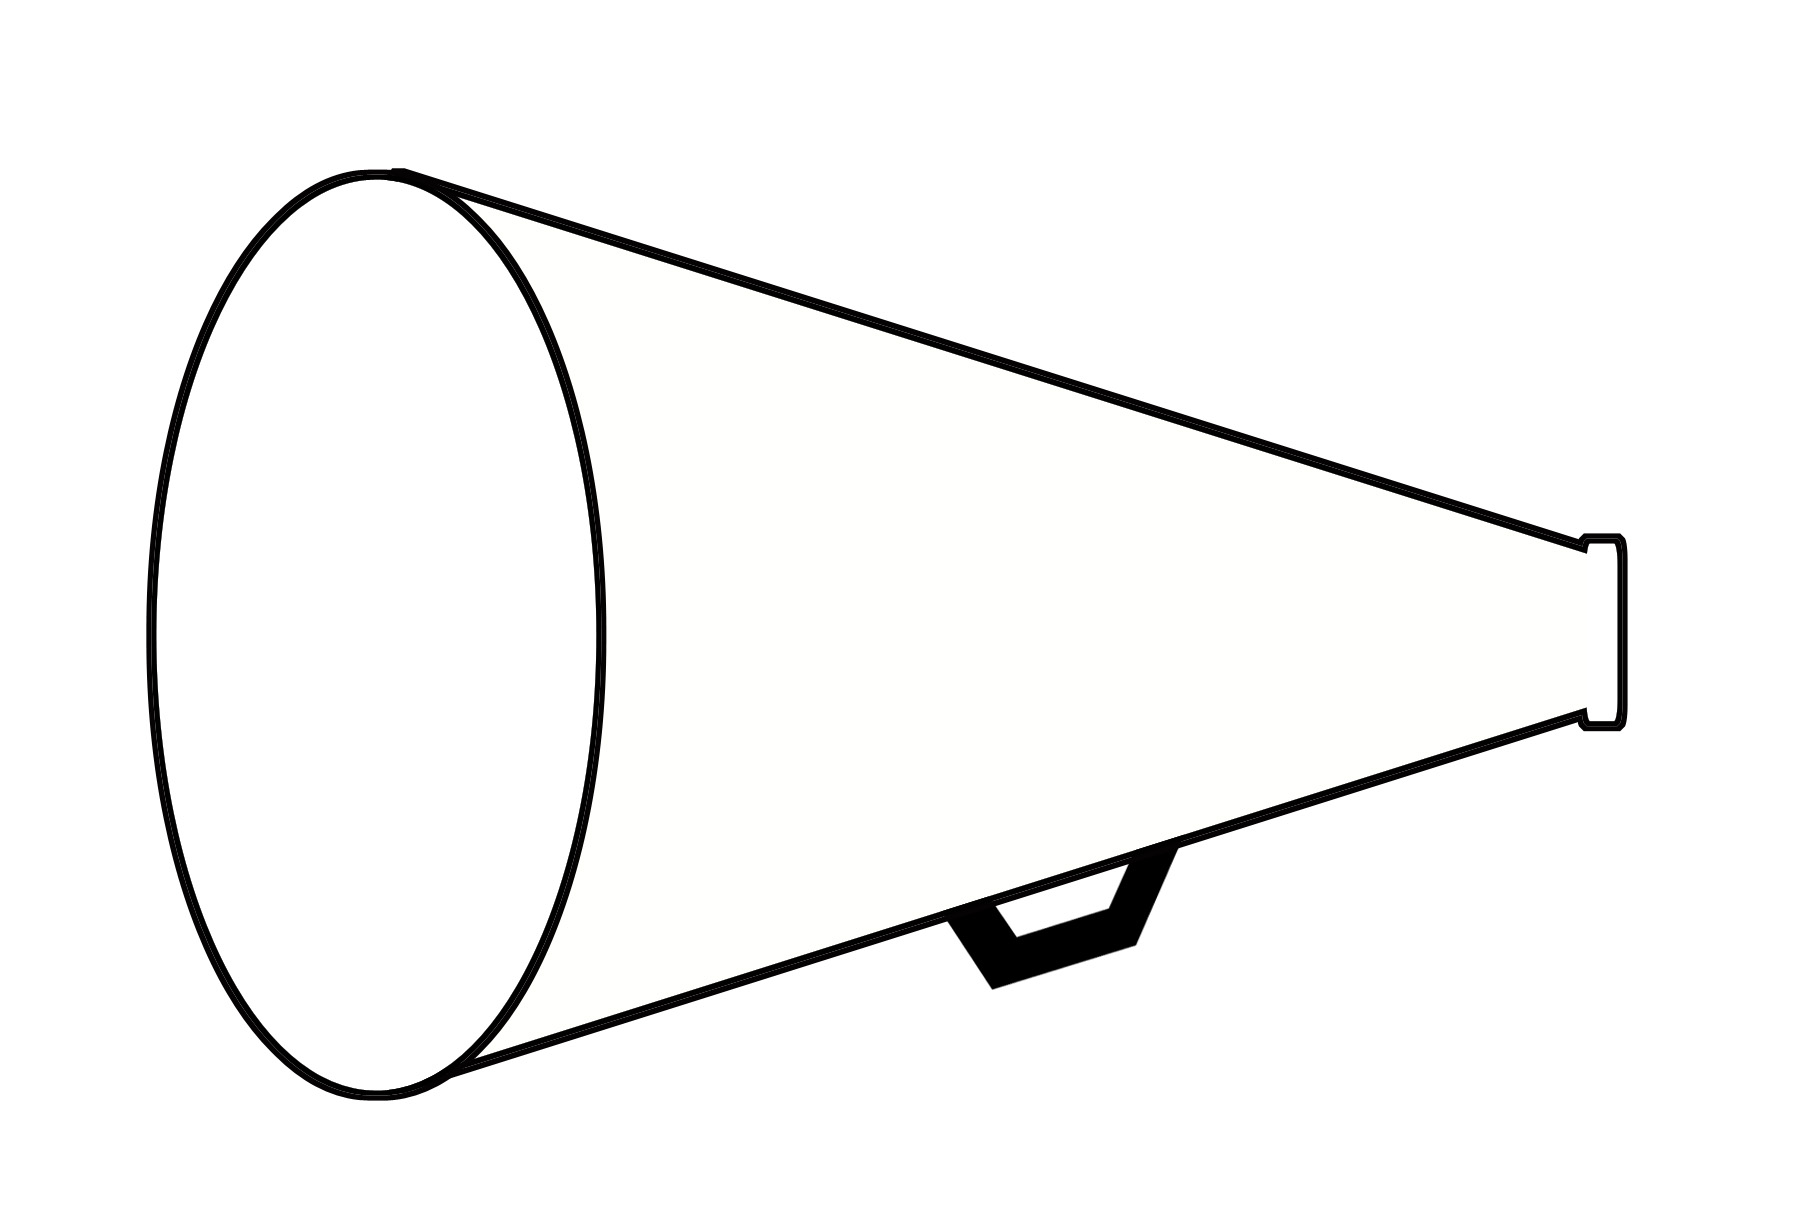 1800x1217 Free Cheerleaders Megaphone Clipart Clipart Image